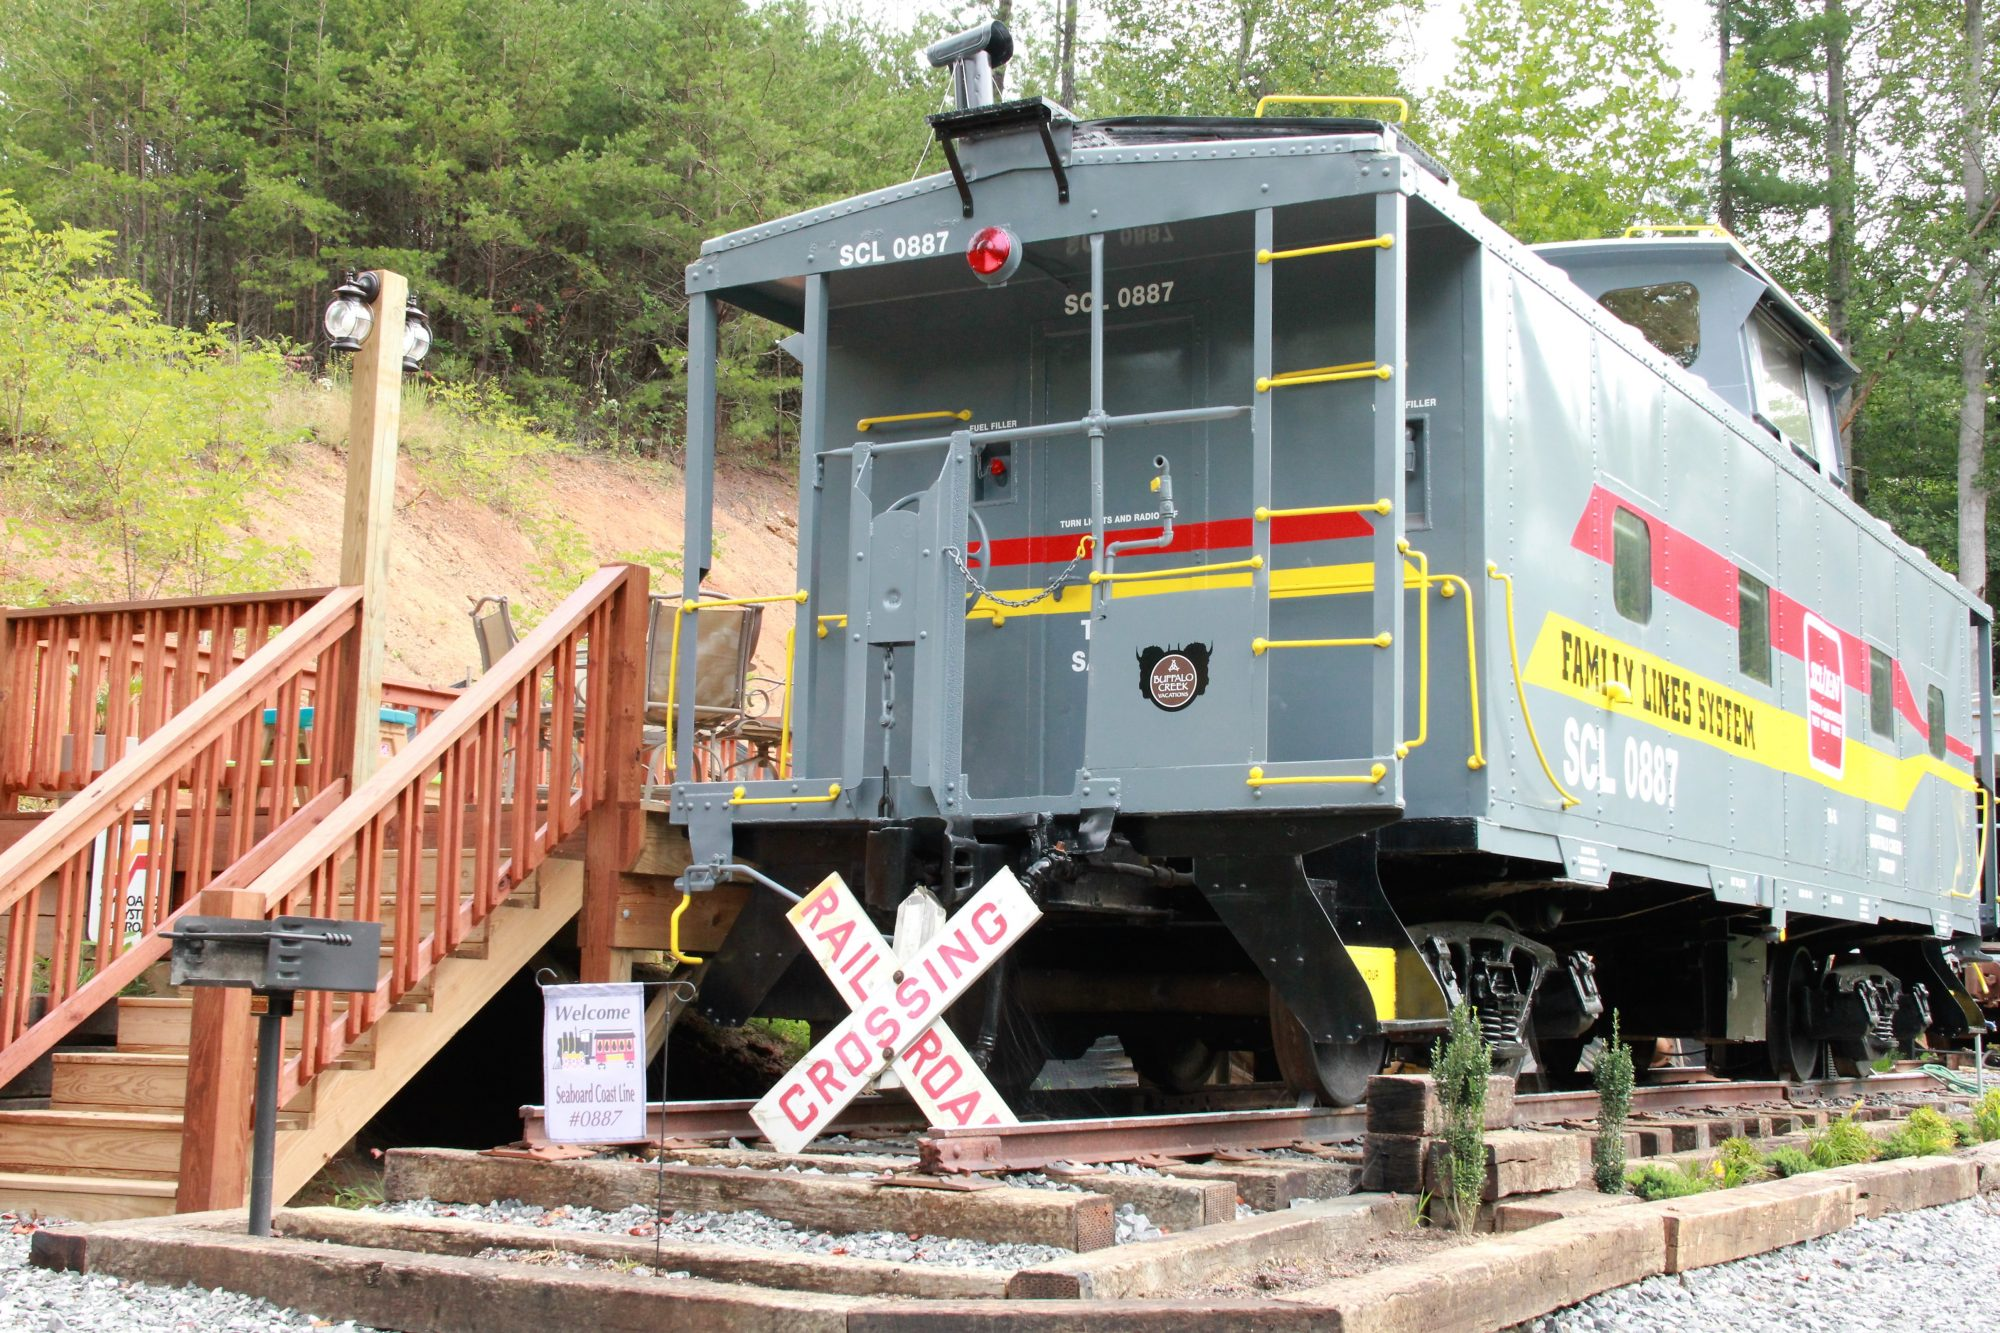 Seaboard Coast Line Caboose in Clyde, North Carolina